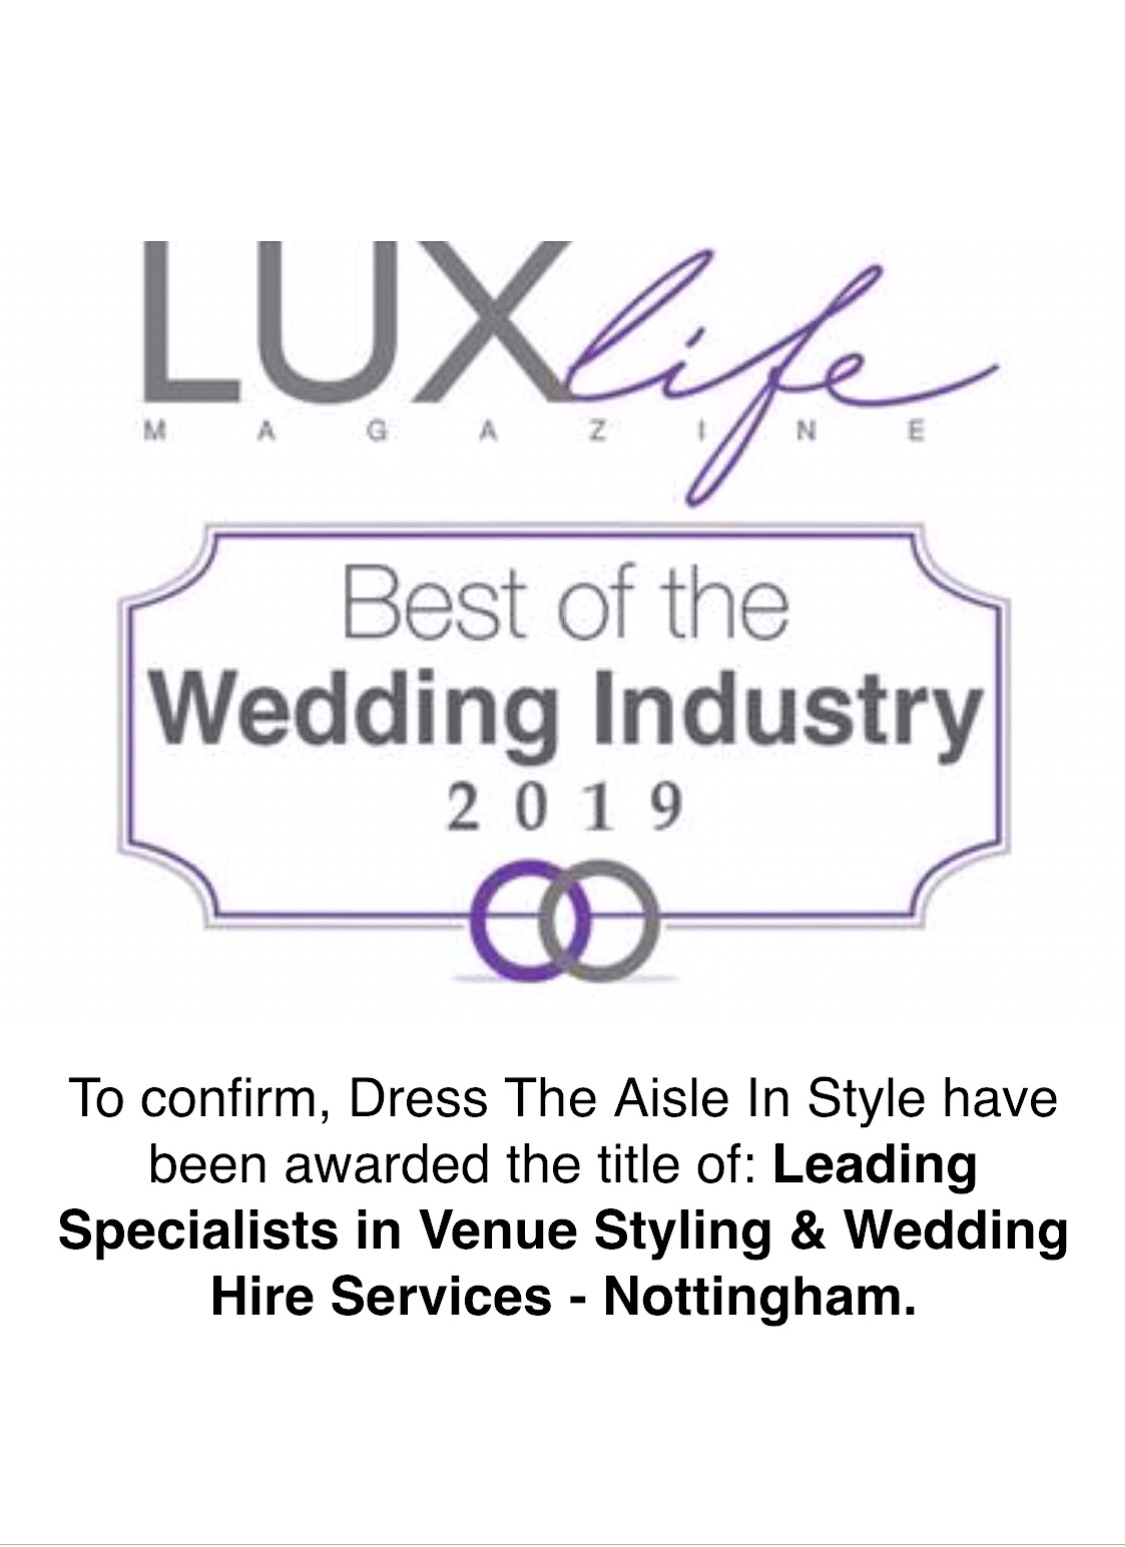 Specialists in venue styling & wedding hire services-Nottingham